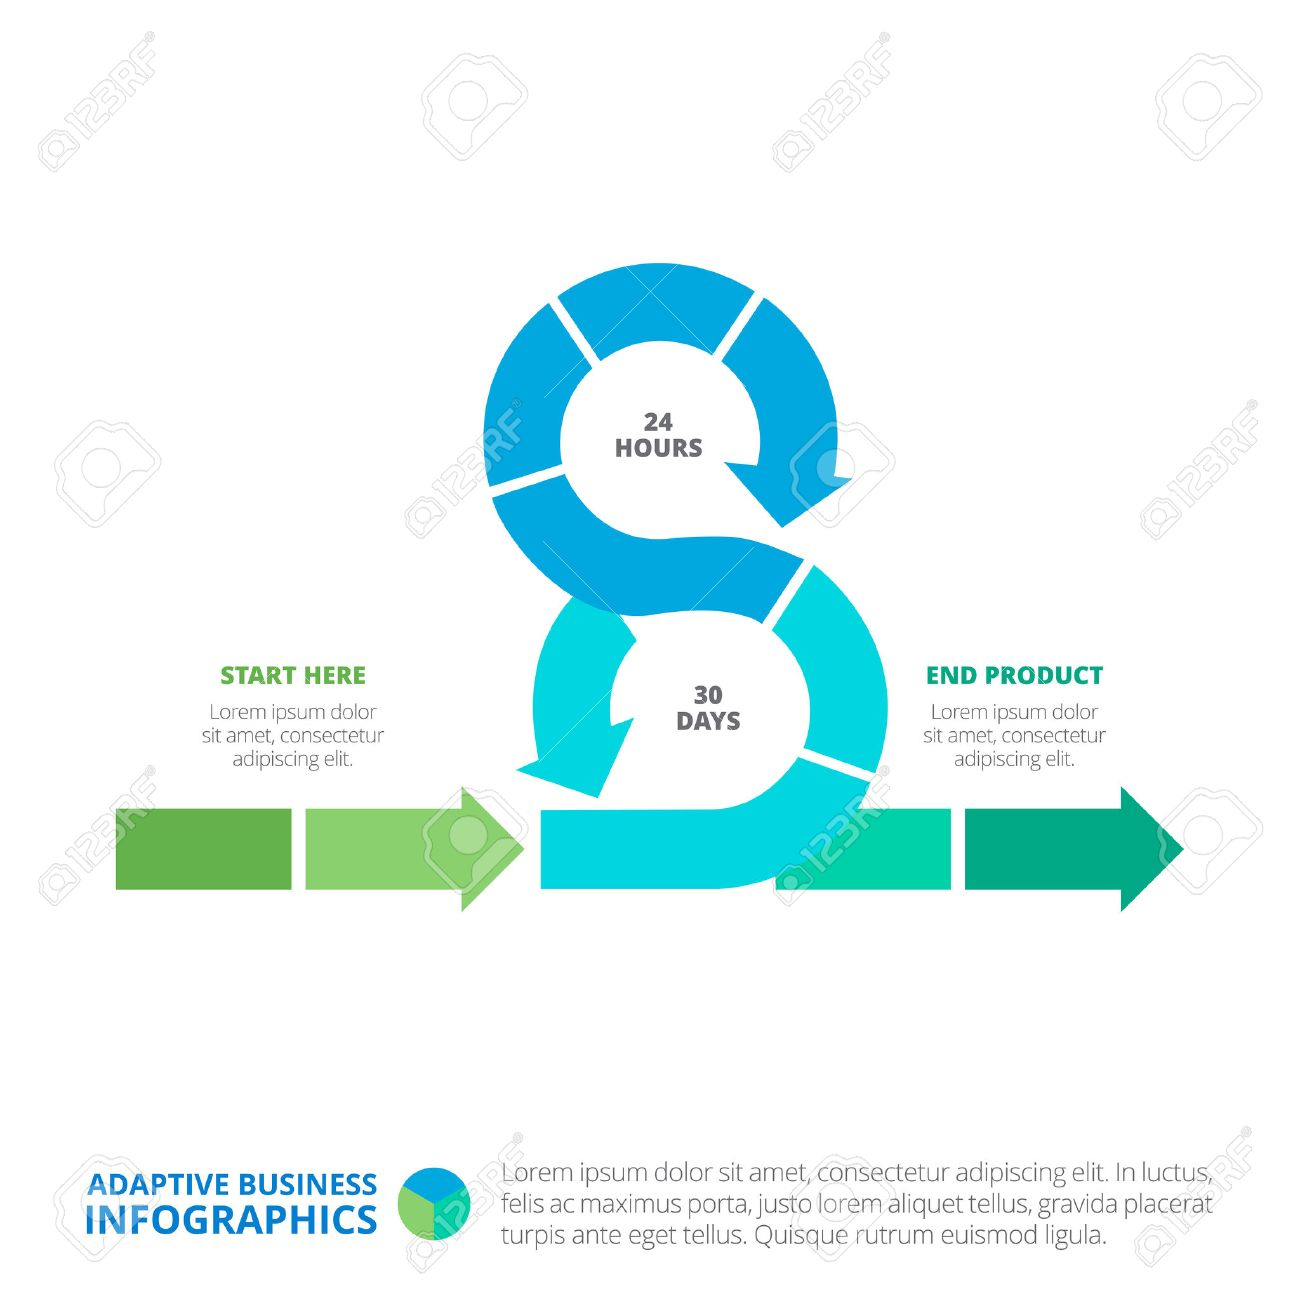 Editable template of scrum process diagram with sample text editable template of scrum process diagram with sample text multicolored version stock vector 55033112 pronofoot35fo Choice Image